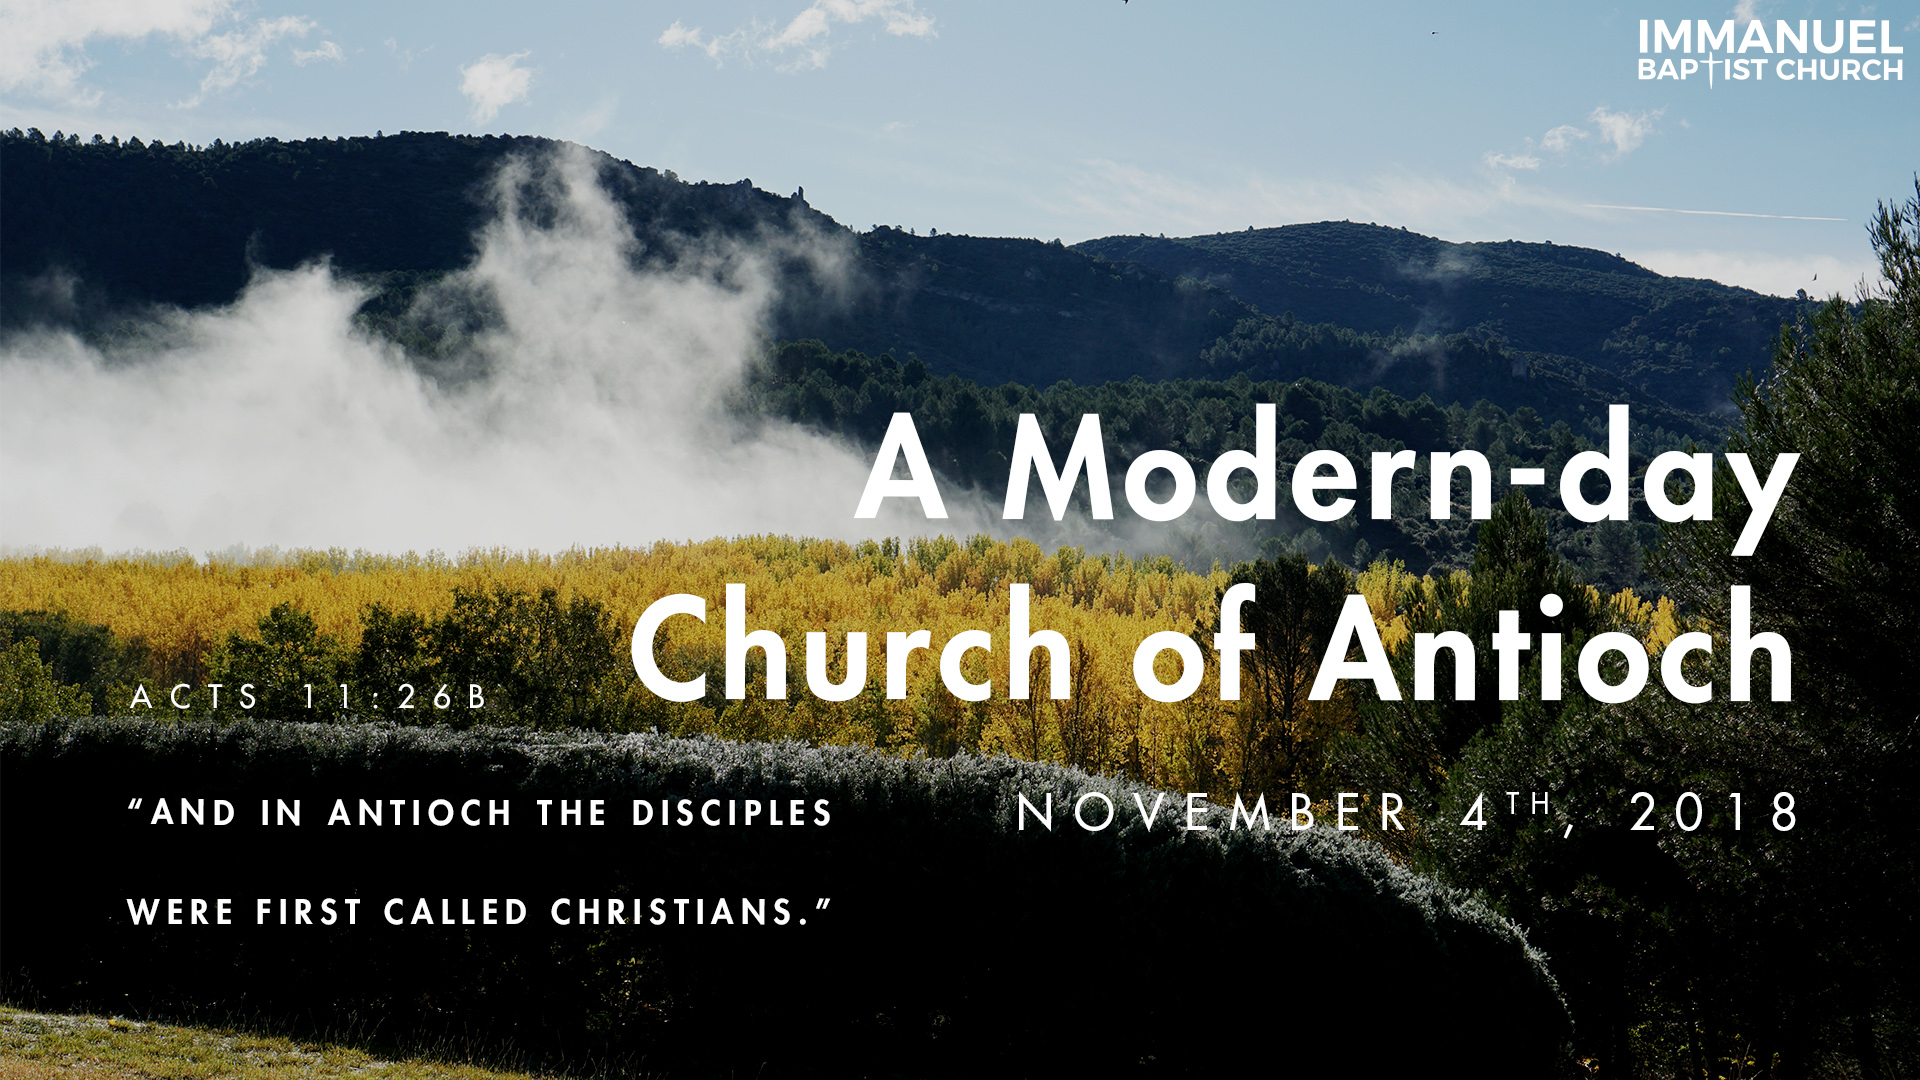 A Modern-day Church of Antioch Image